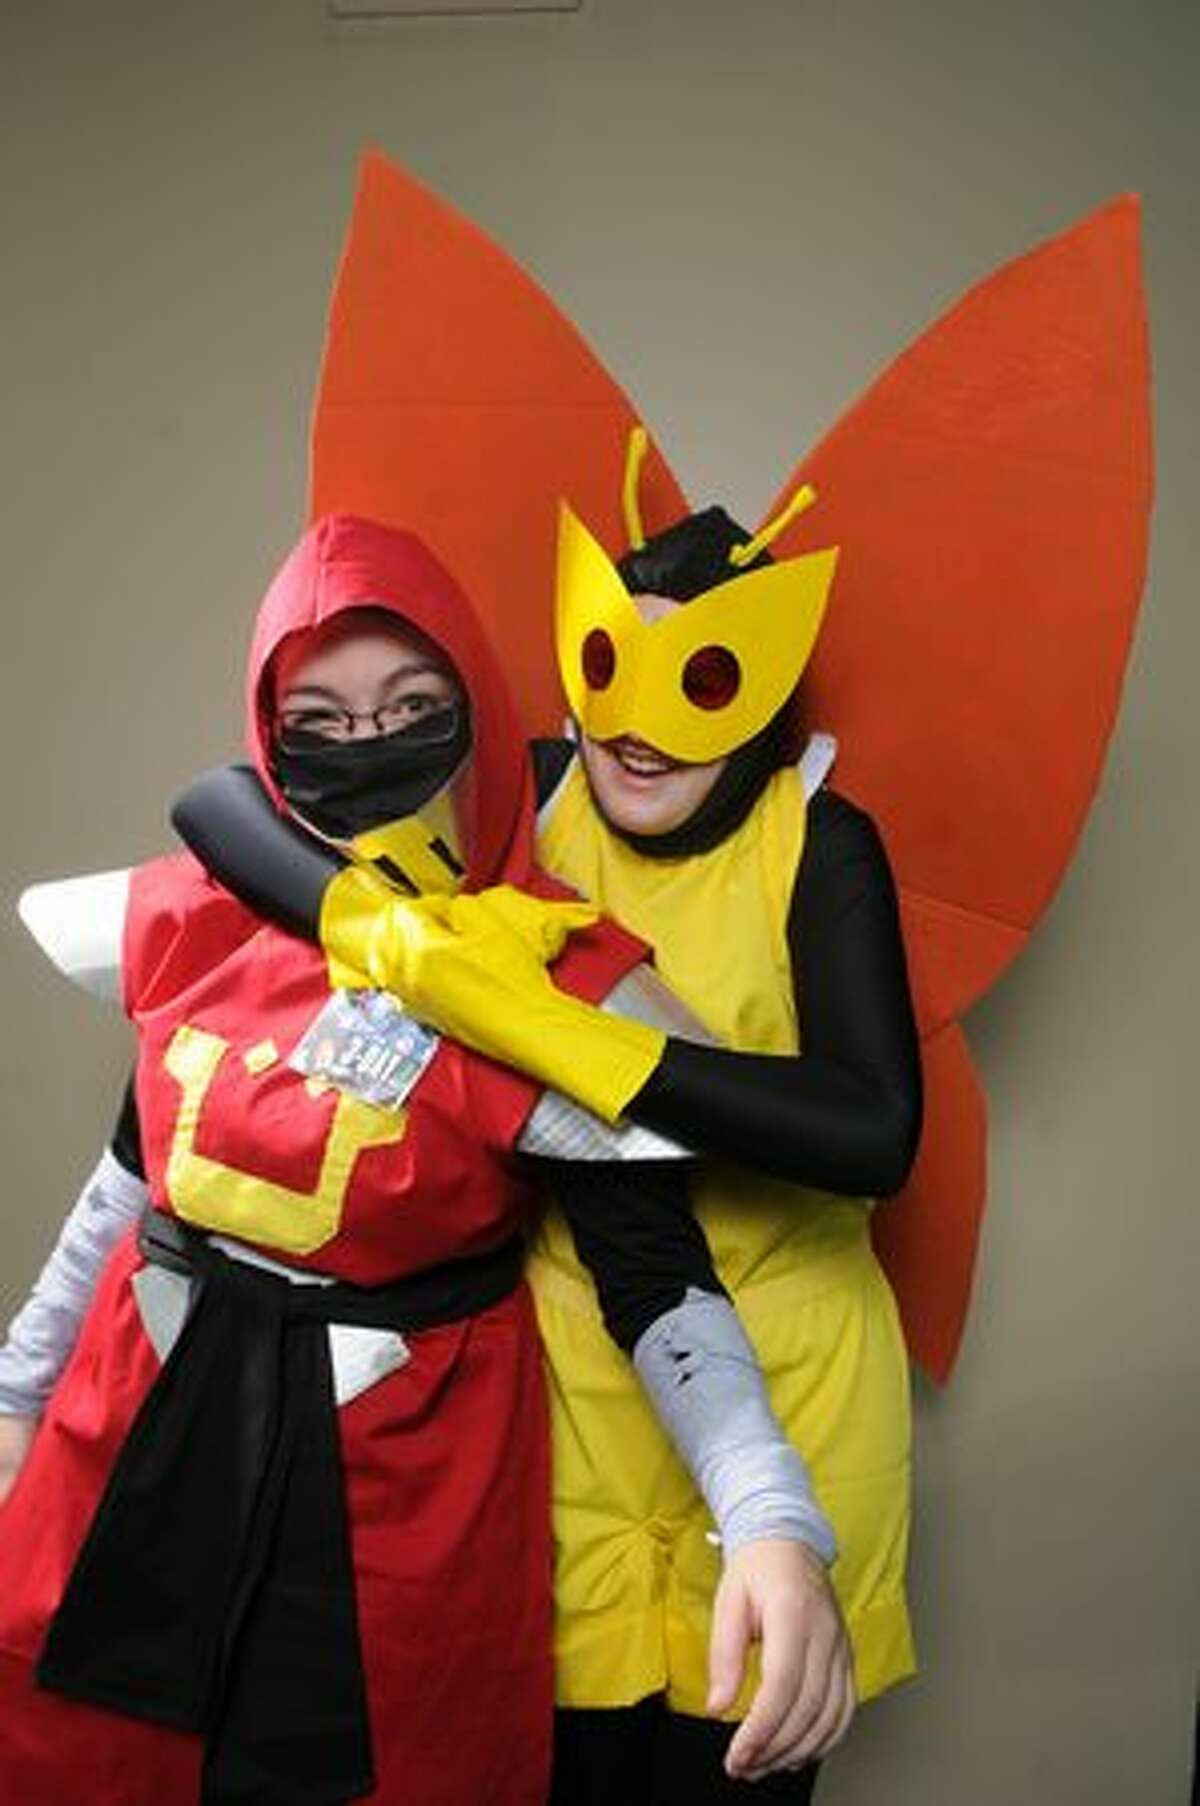 Emily Williamson, left, and Jordan Hopps, who traveled from Dallas for the event, pose as Venture Brothers characters for a portrait at Emerald City Comicon at the Washington State Convention Center in Seattle on Saturday, March 5, 2011.